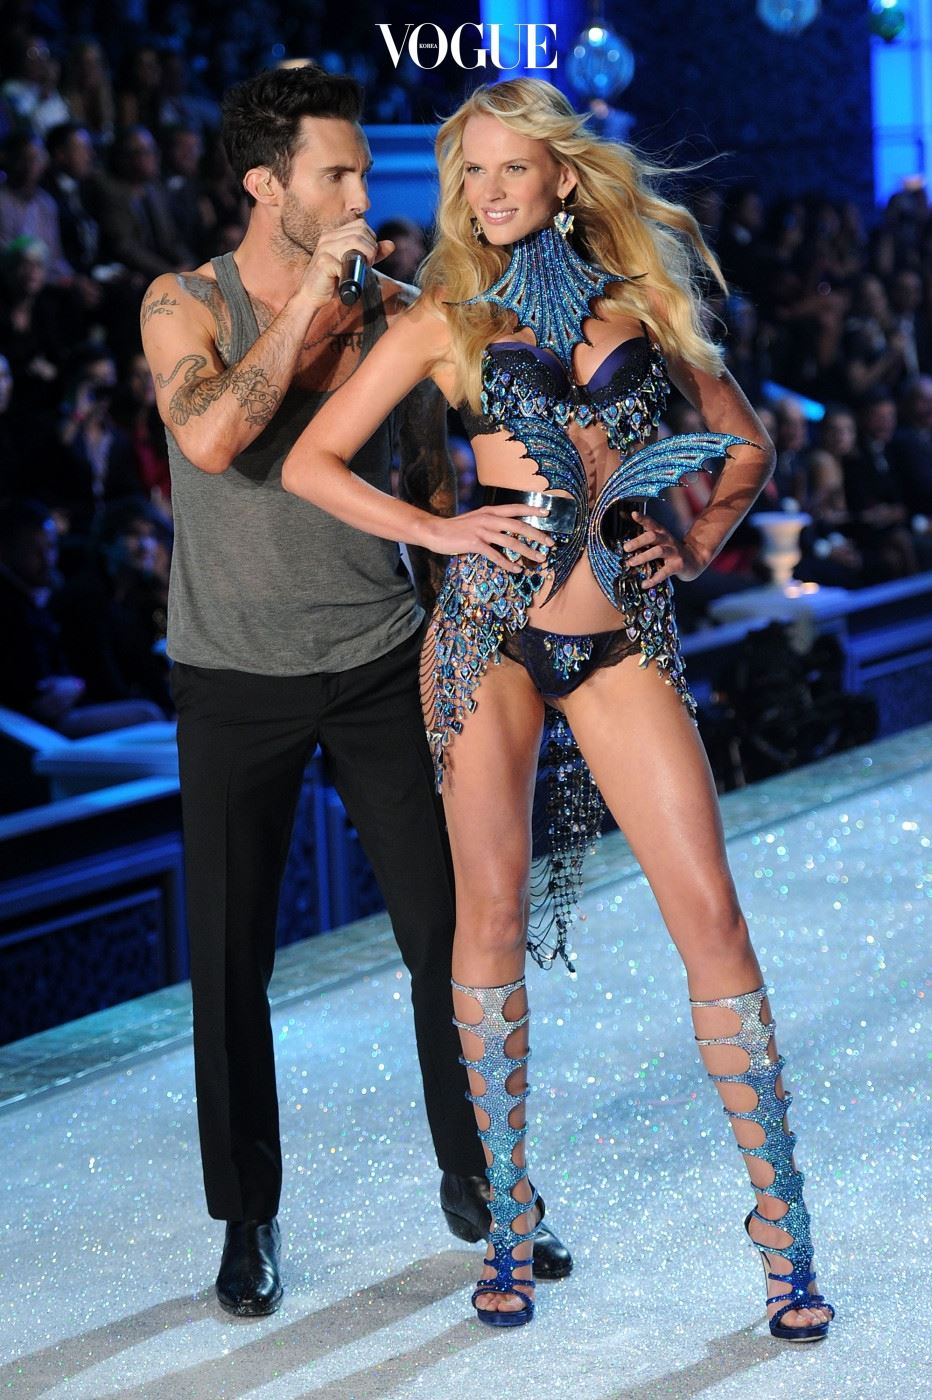 NEW YORK, NY - NOVEMBER 09:  Adam Levine of Maroon 5 performs with model Anne V during the 2011 Victoria's Secret Fashion Show at the Lexington Avenue Armory on November 9, 2011 in New York City.  (Photo by Jamie McCarthy/Getty Images)